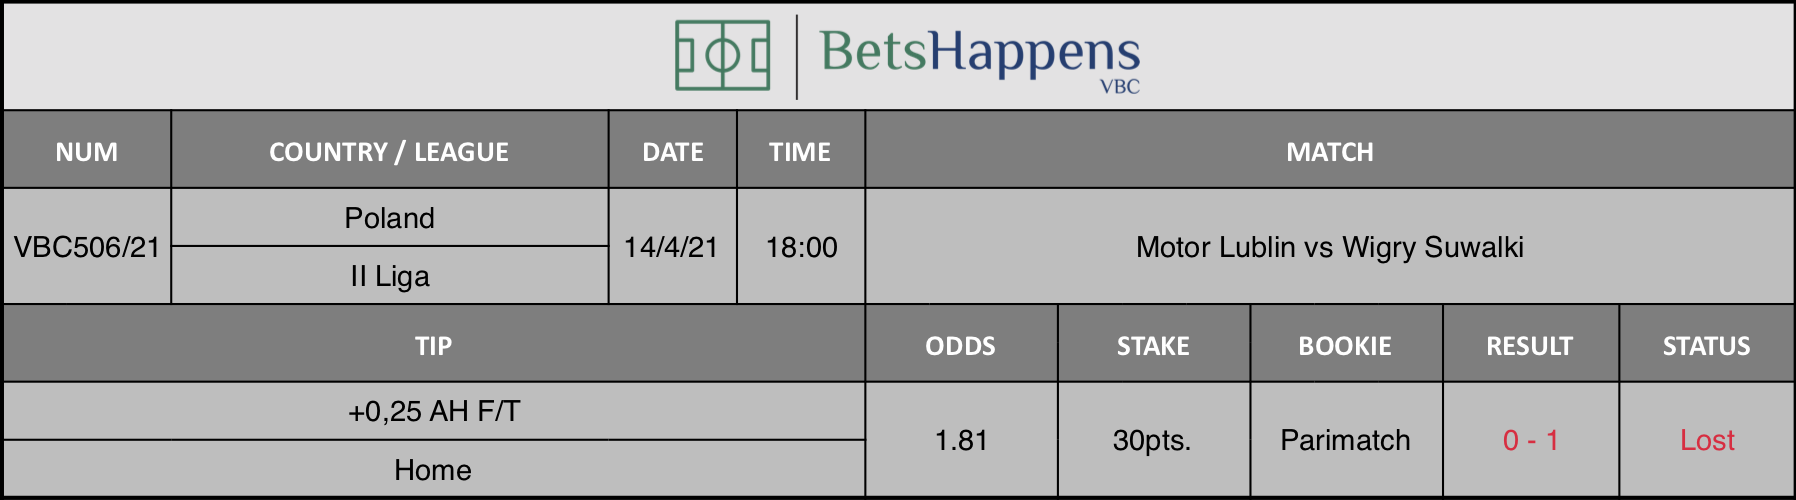 Results of our tip for the Motor Lublin vs Wigry Suwalki match where +0,25 AH F/T  Home is recommended.